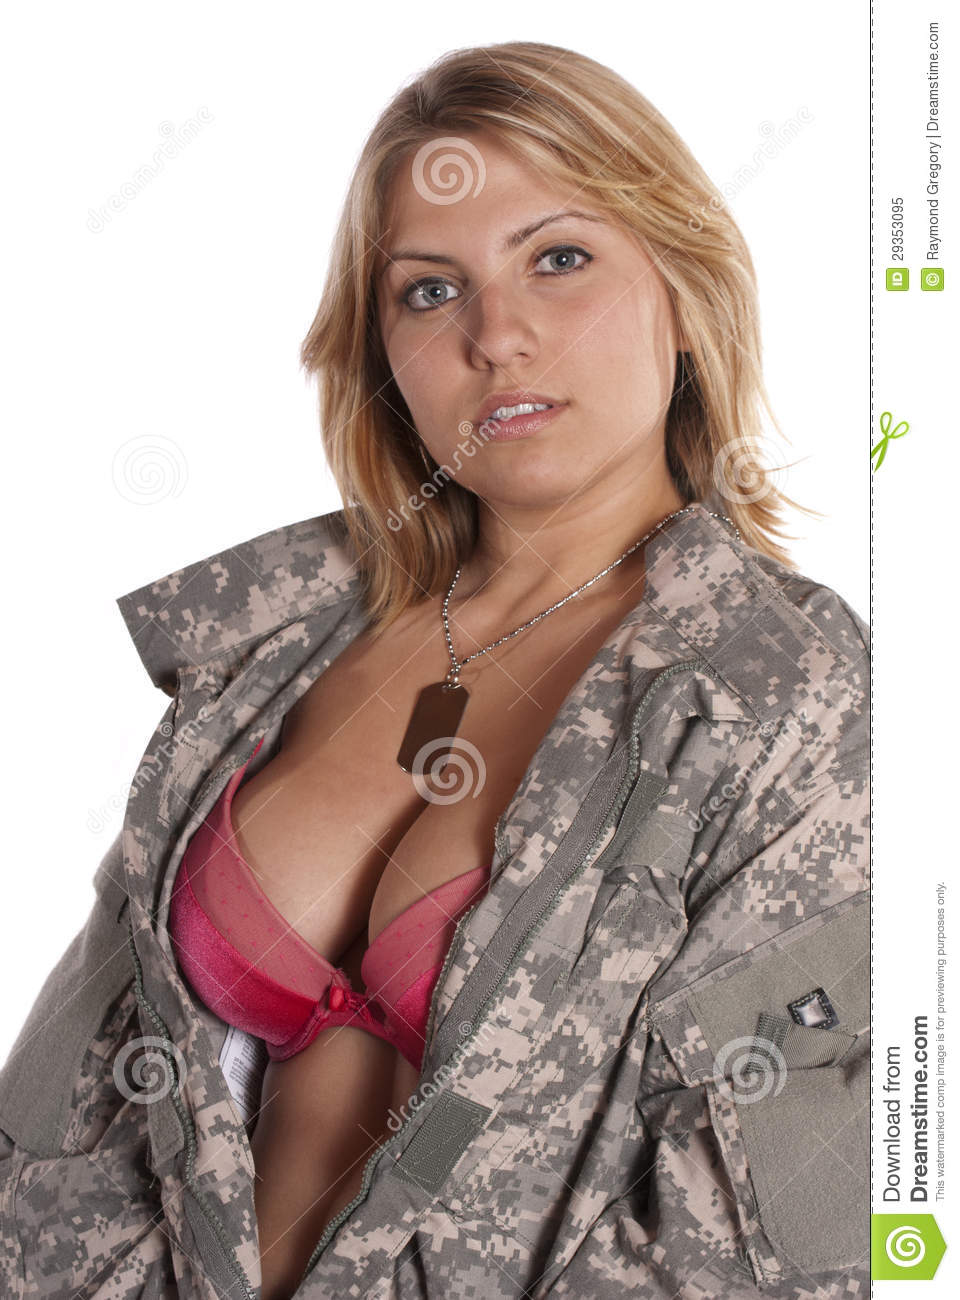 Military women in uniform nude pics 894